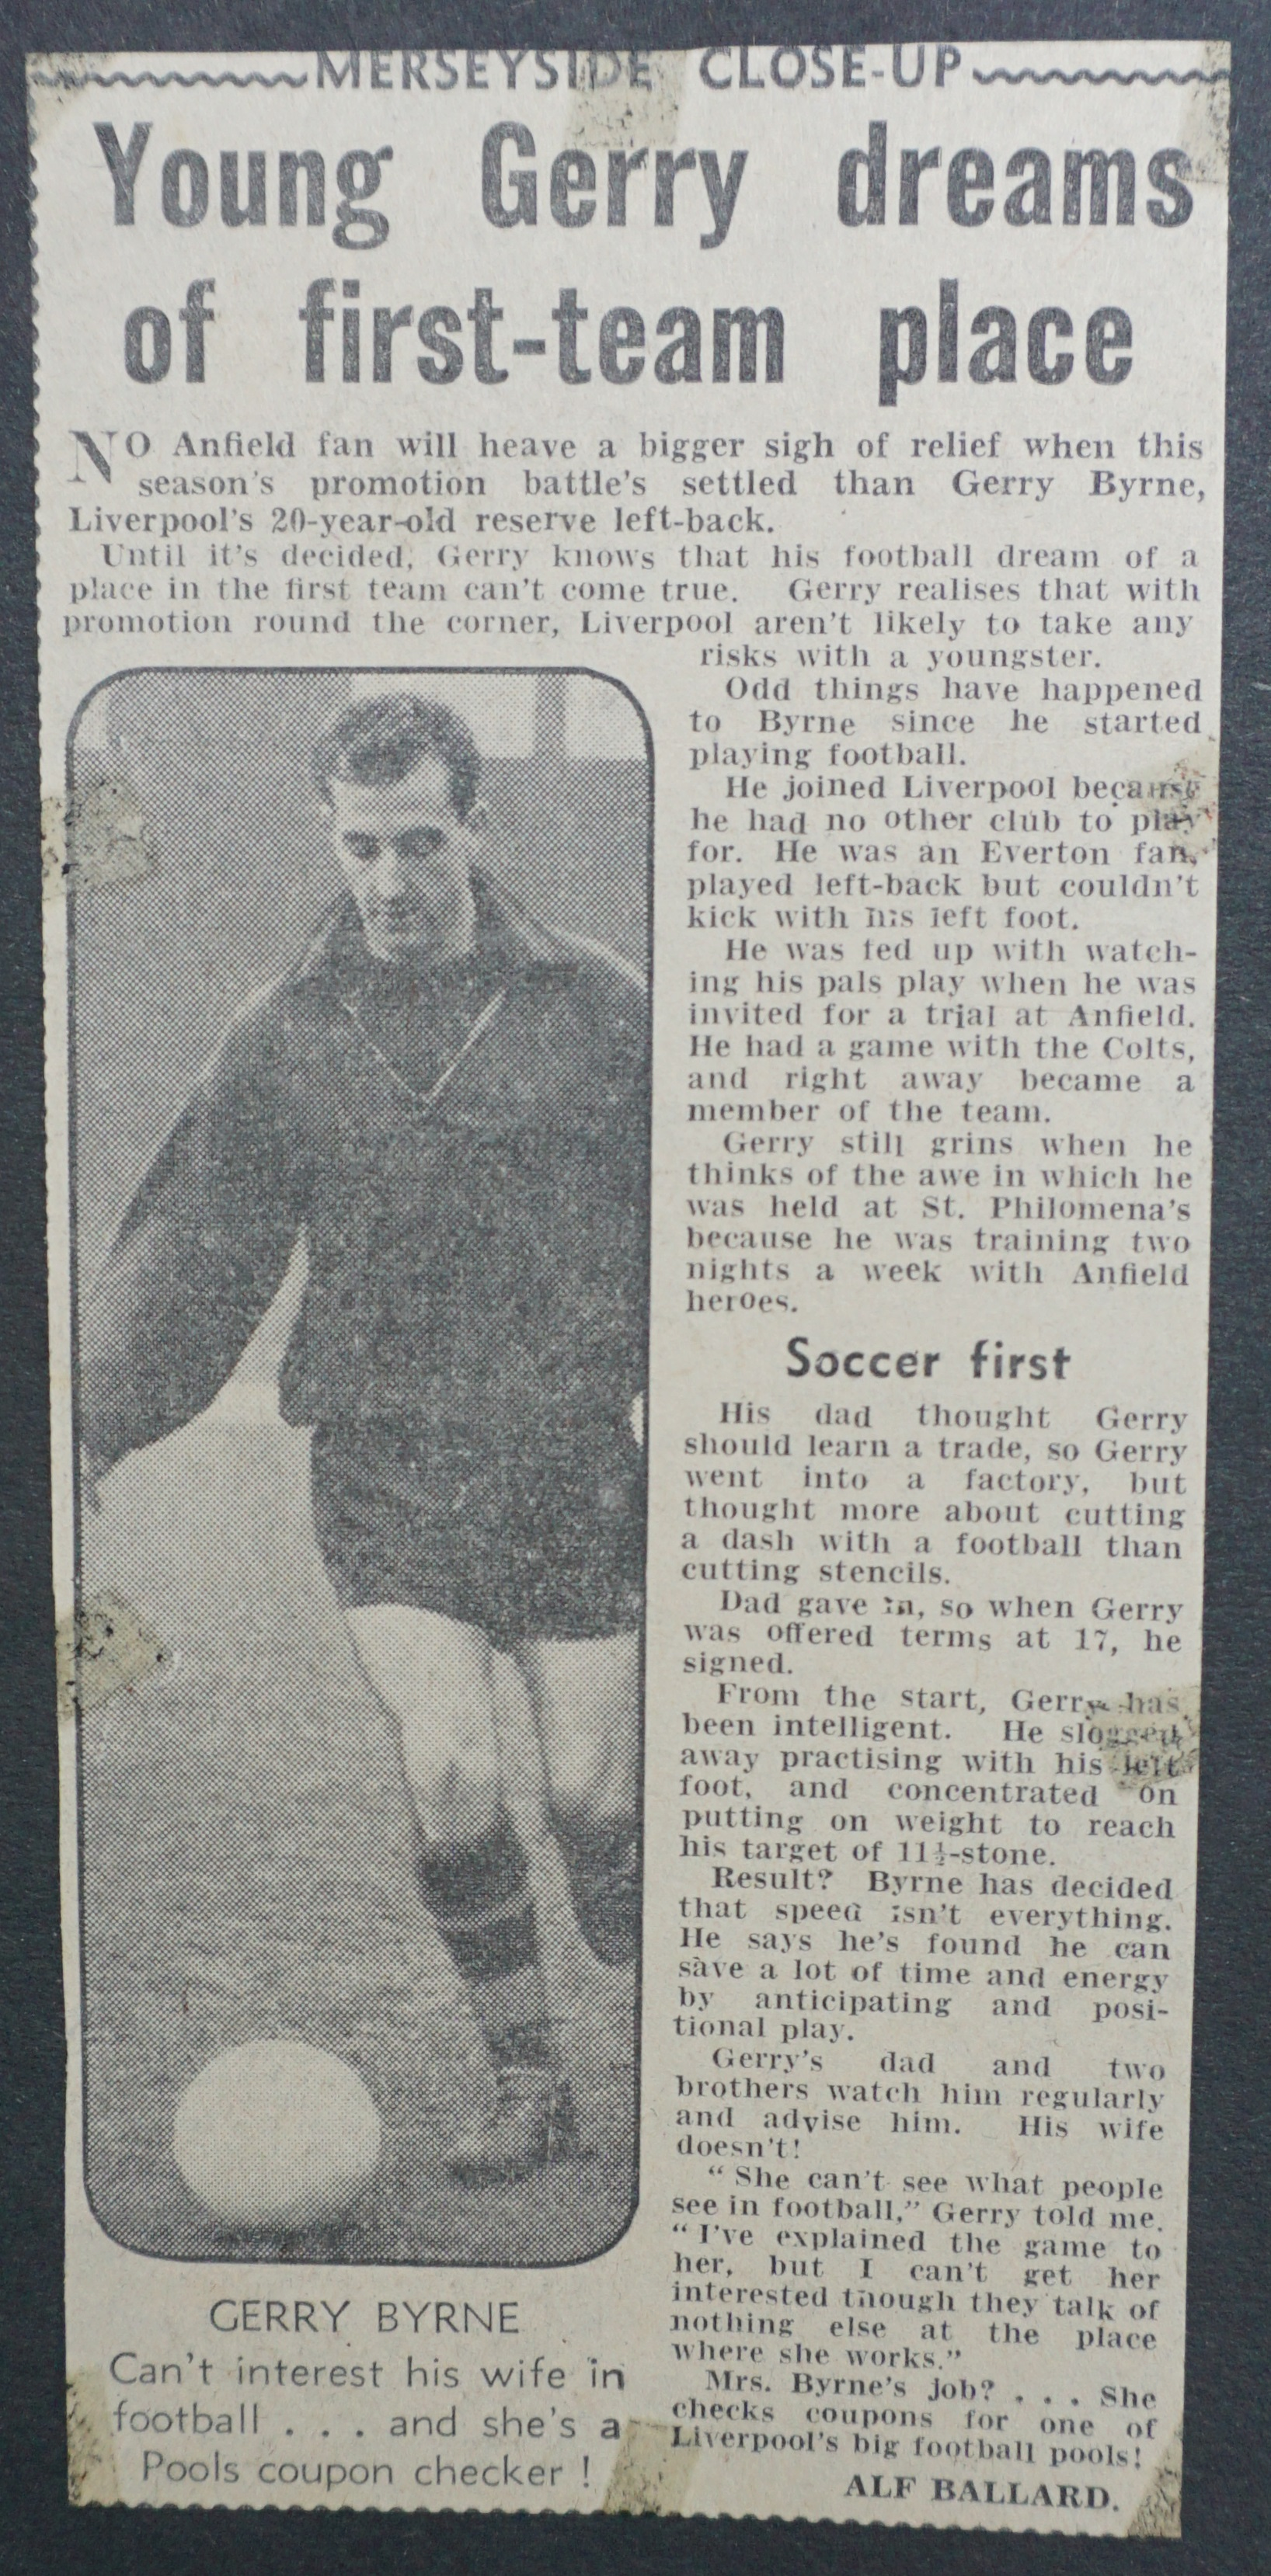 Young Byrne dreams of first-team place 1958-59